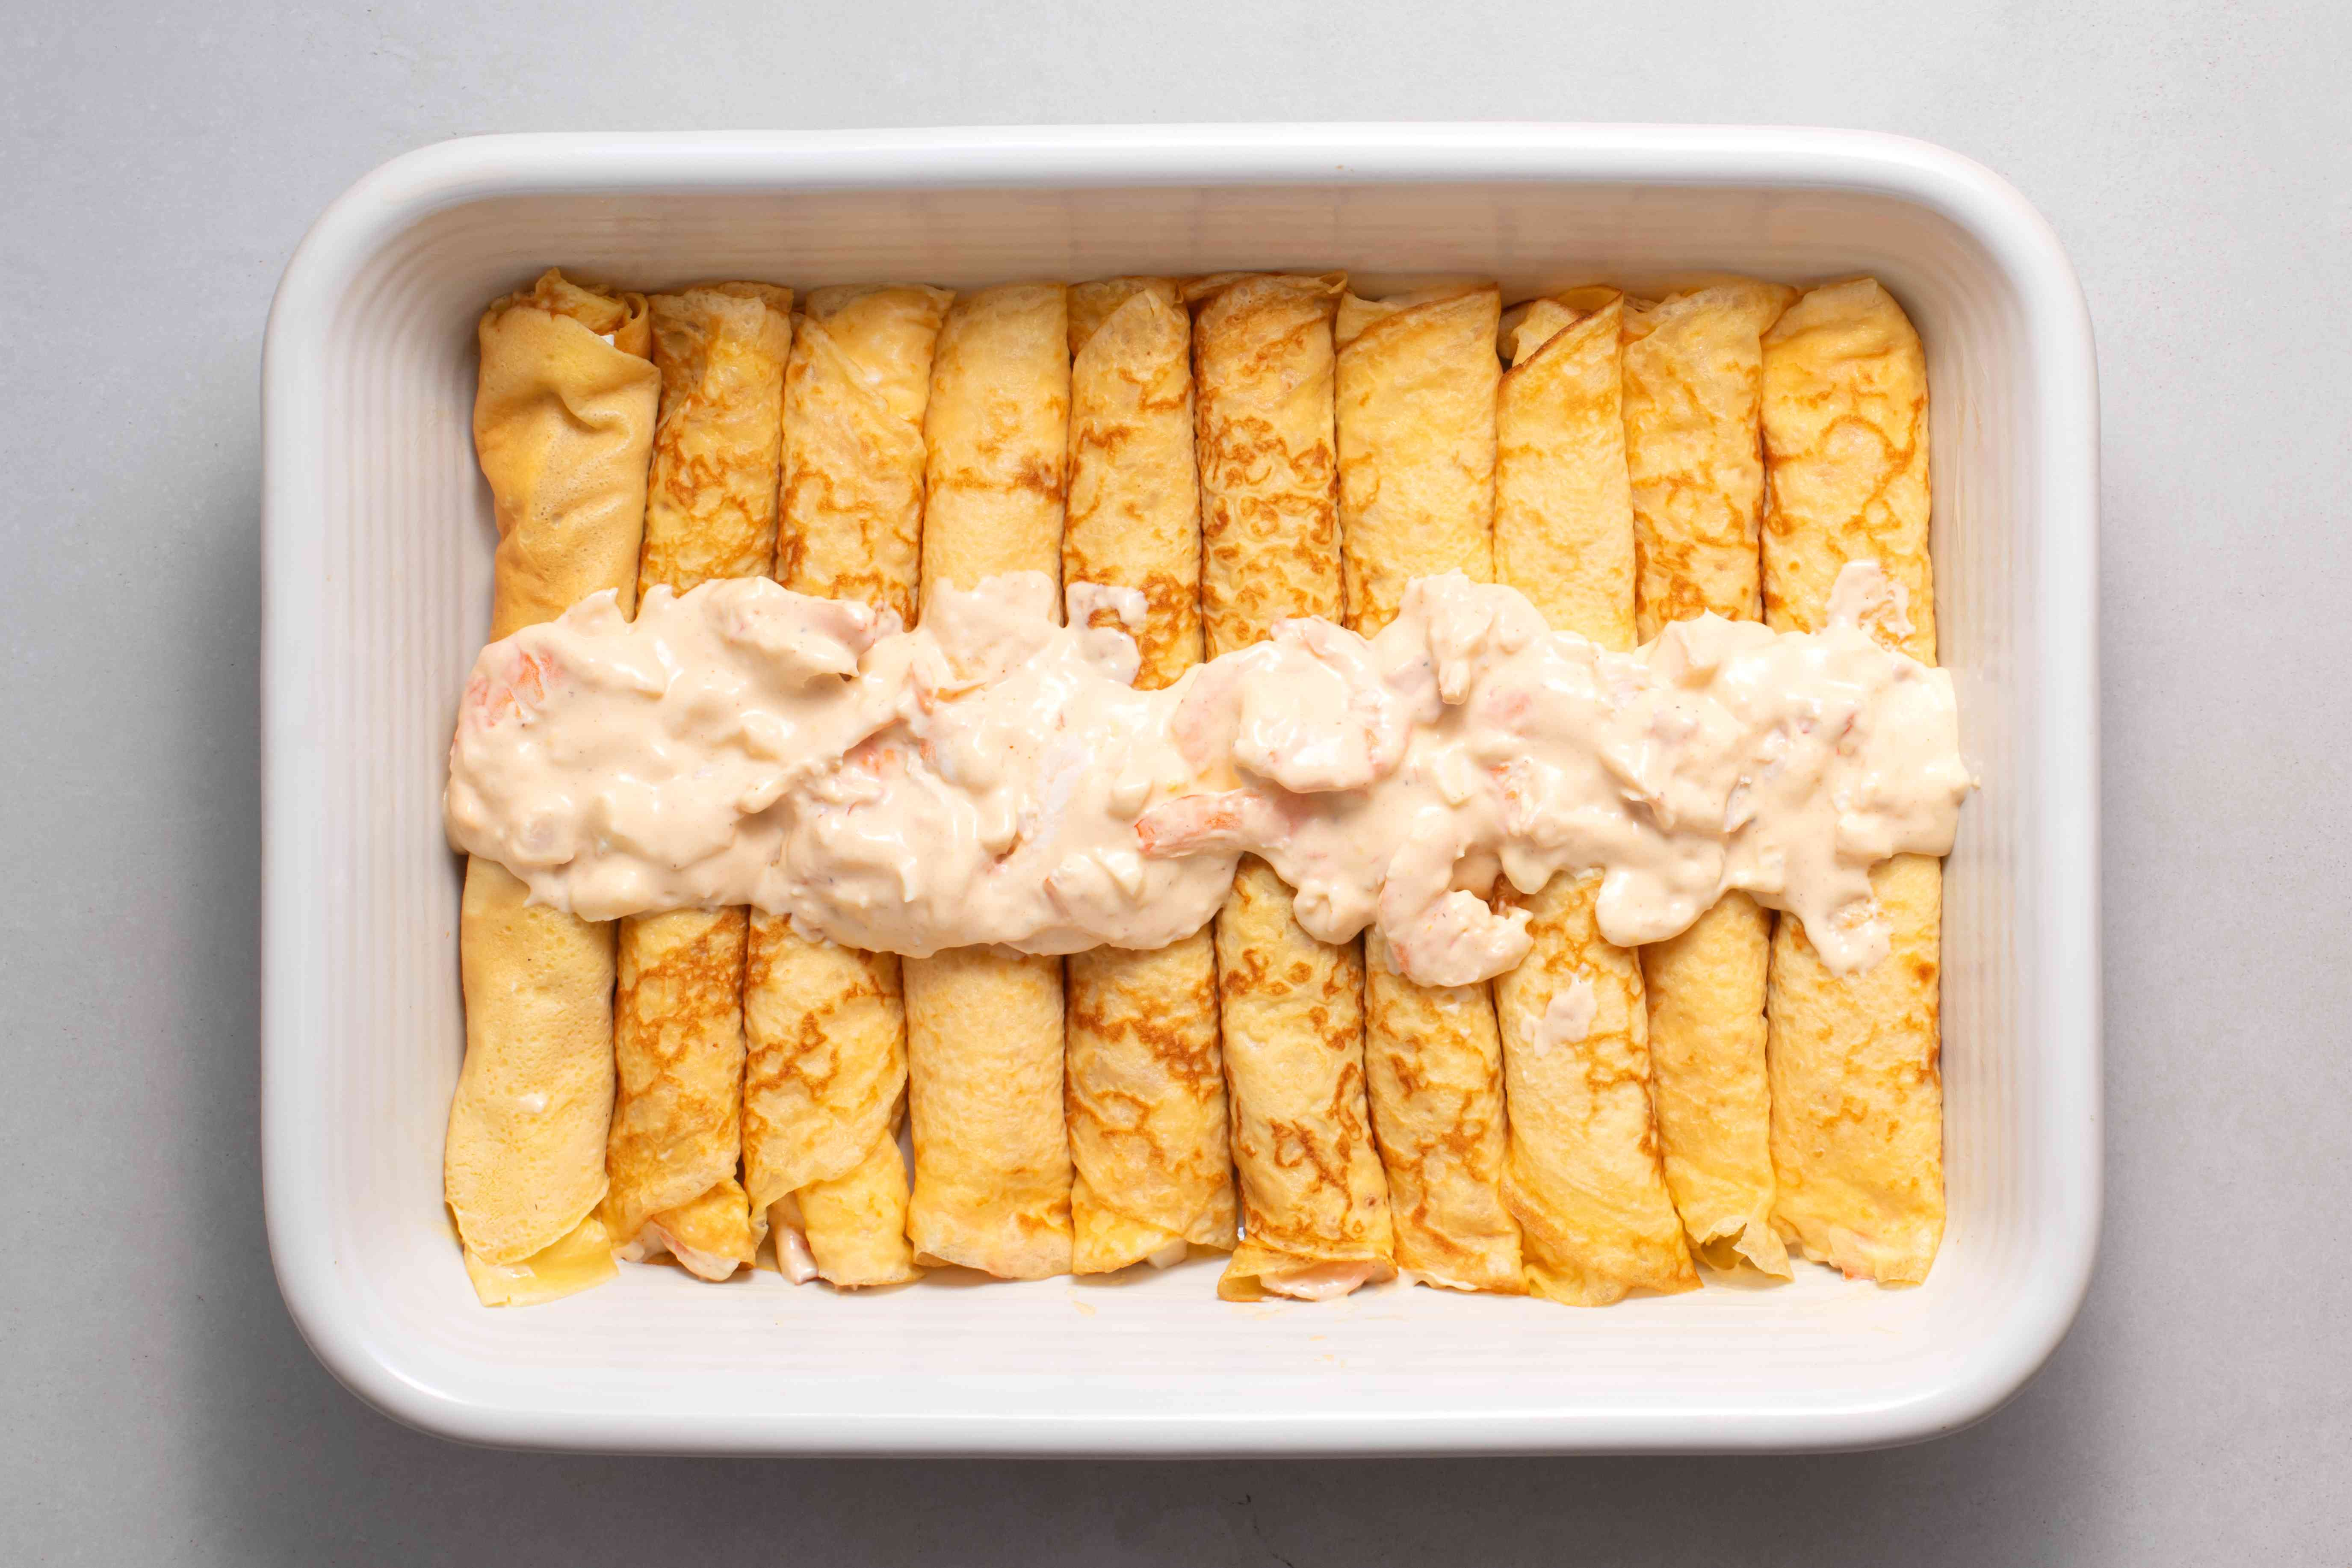 seafood crepes with seafood mixture on top in a baking dish